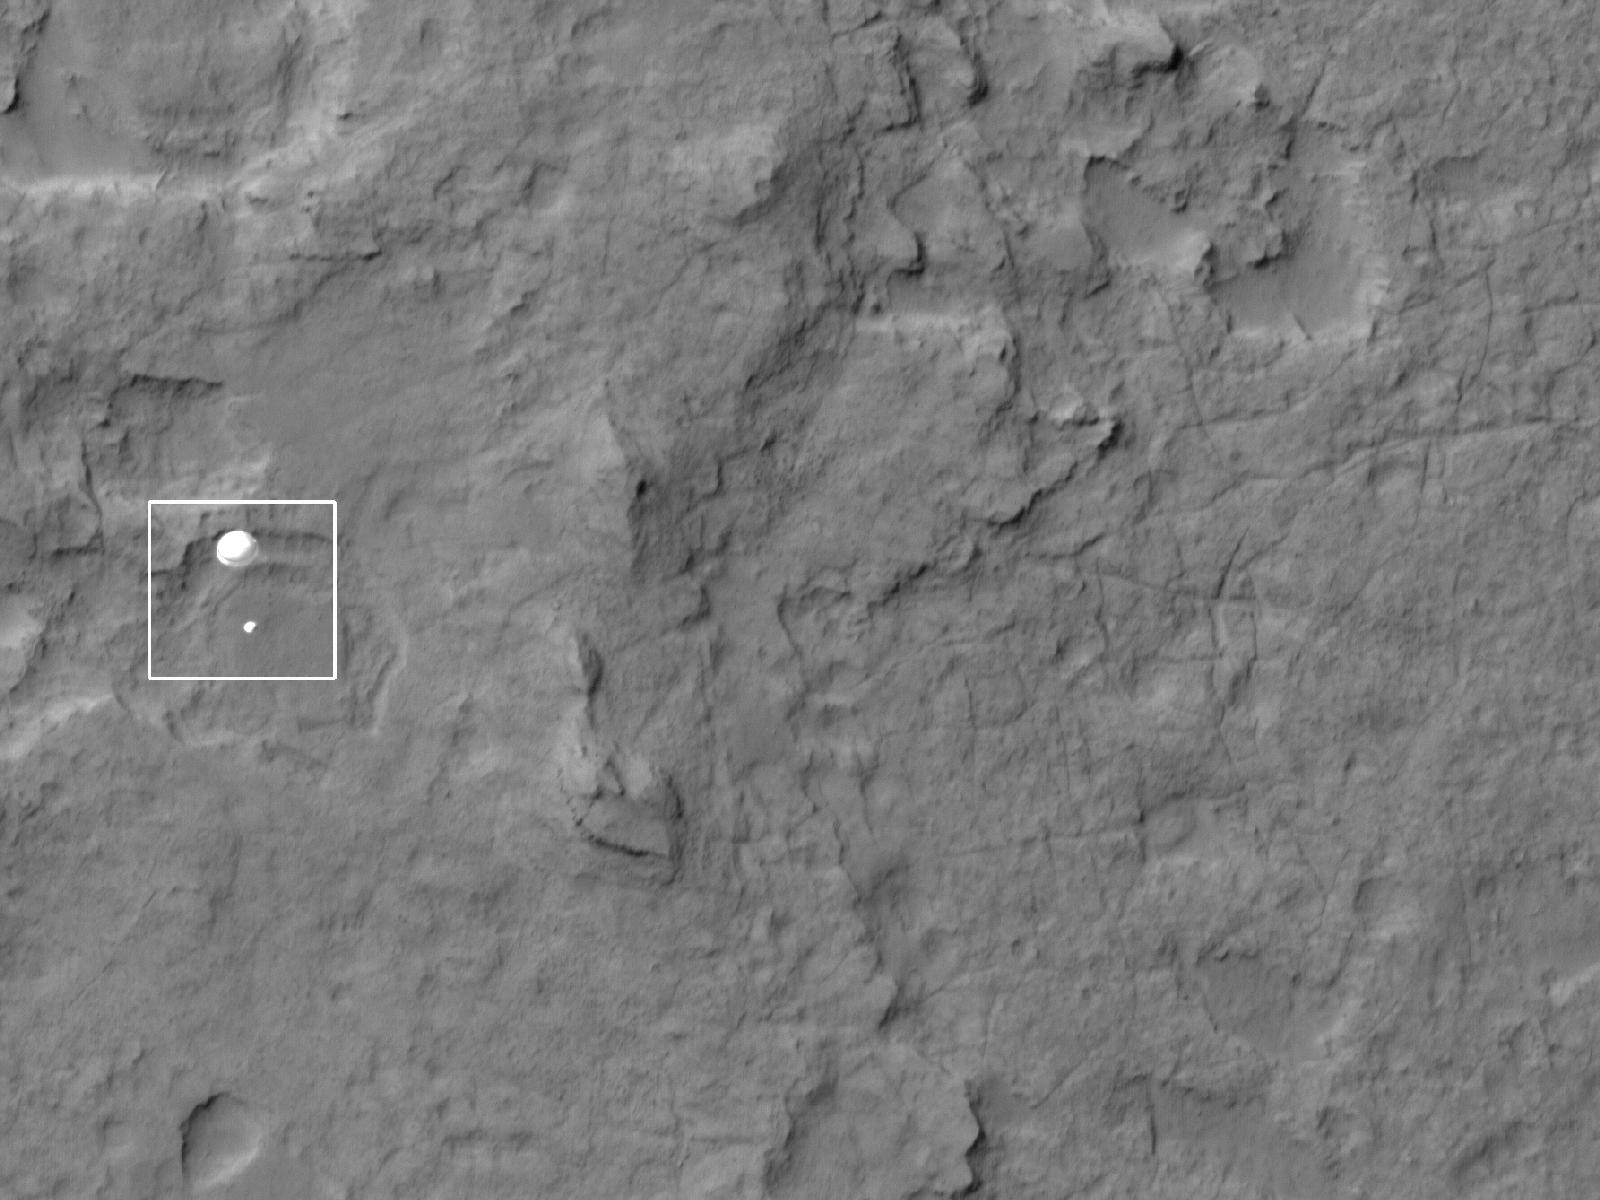 Mars Rover Curiosity Landing From Orbit